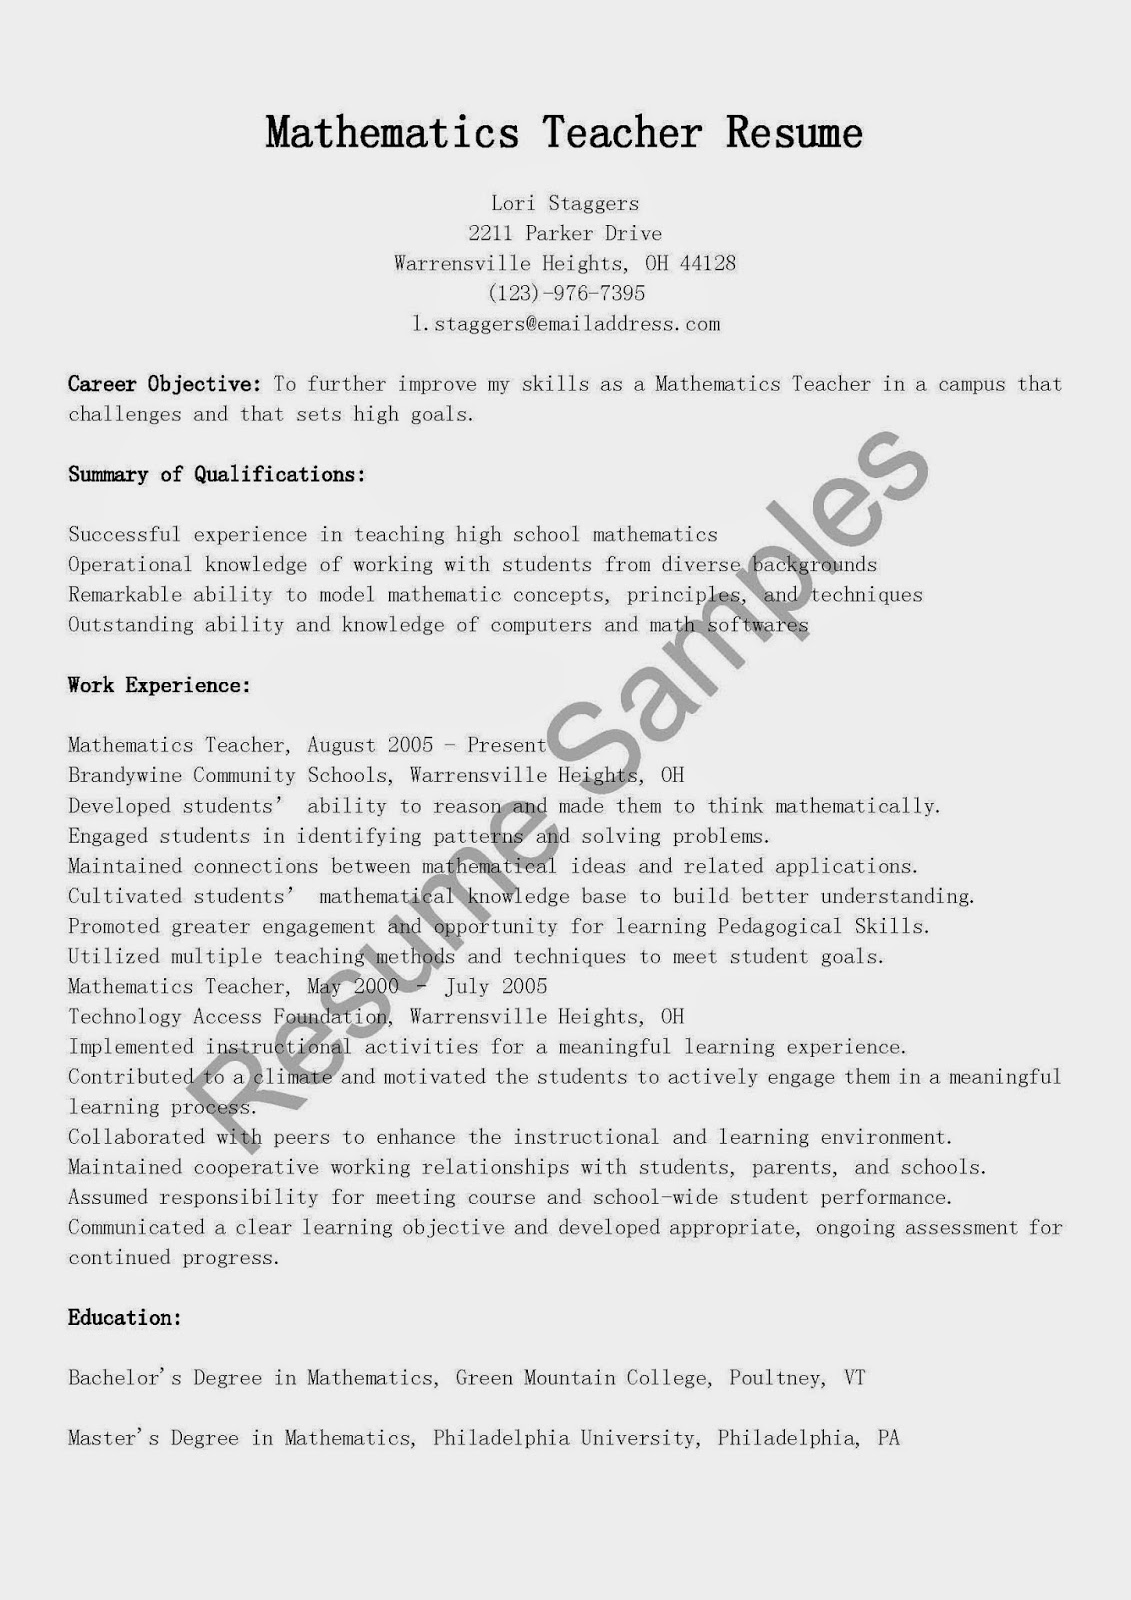 resume samples  mathematics teacher resume sample